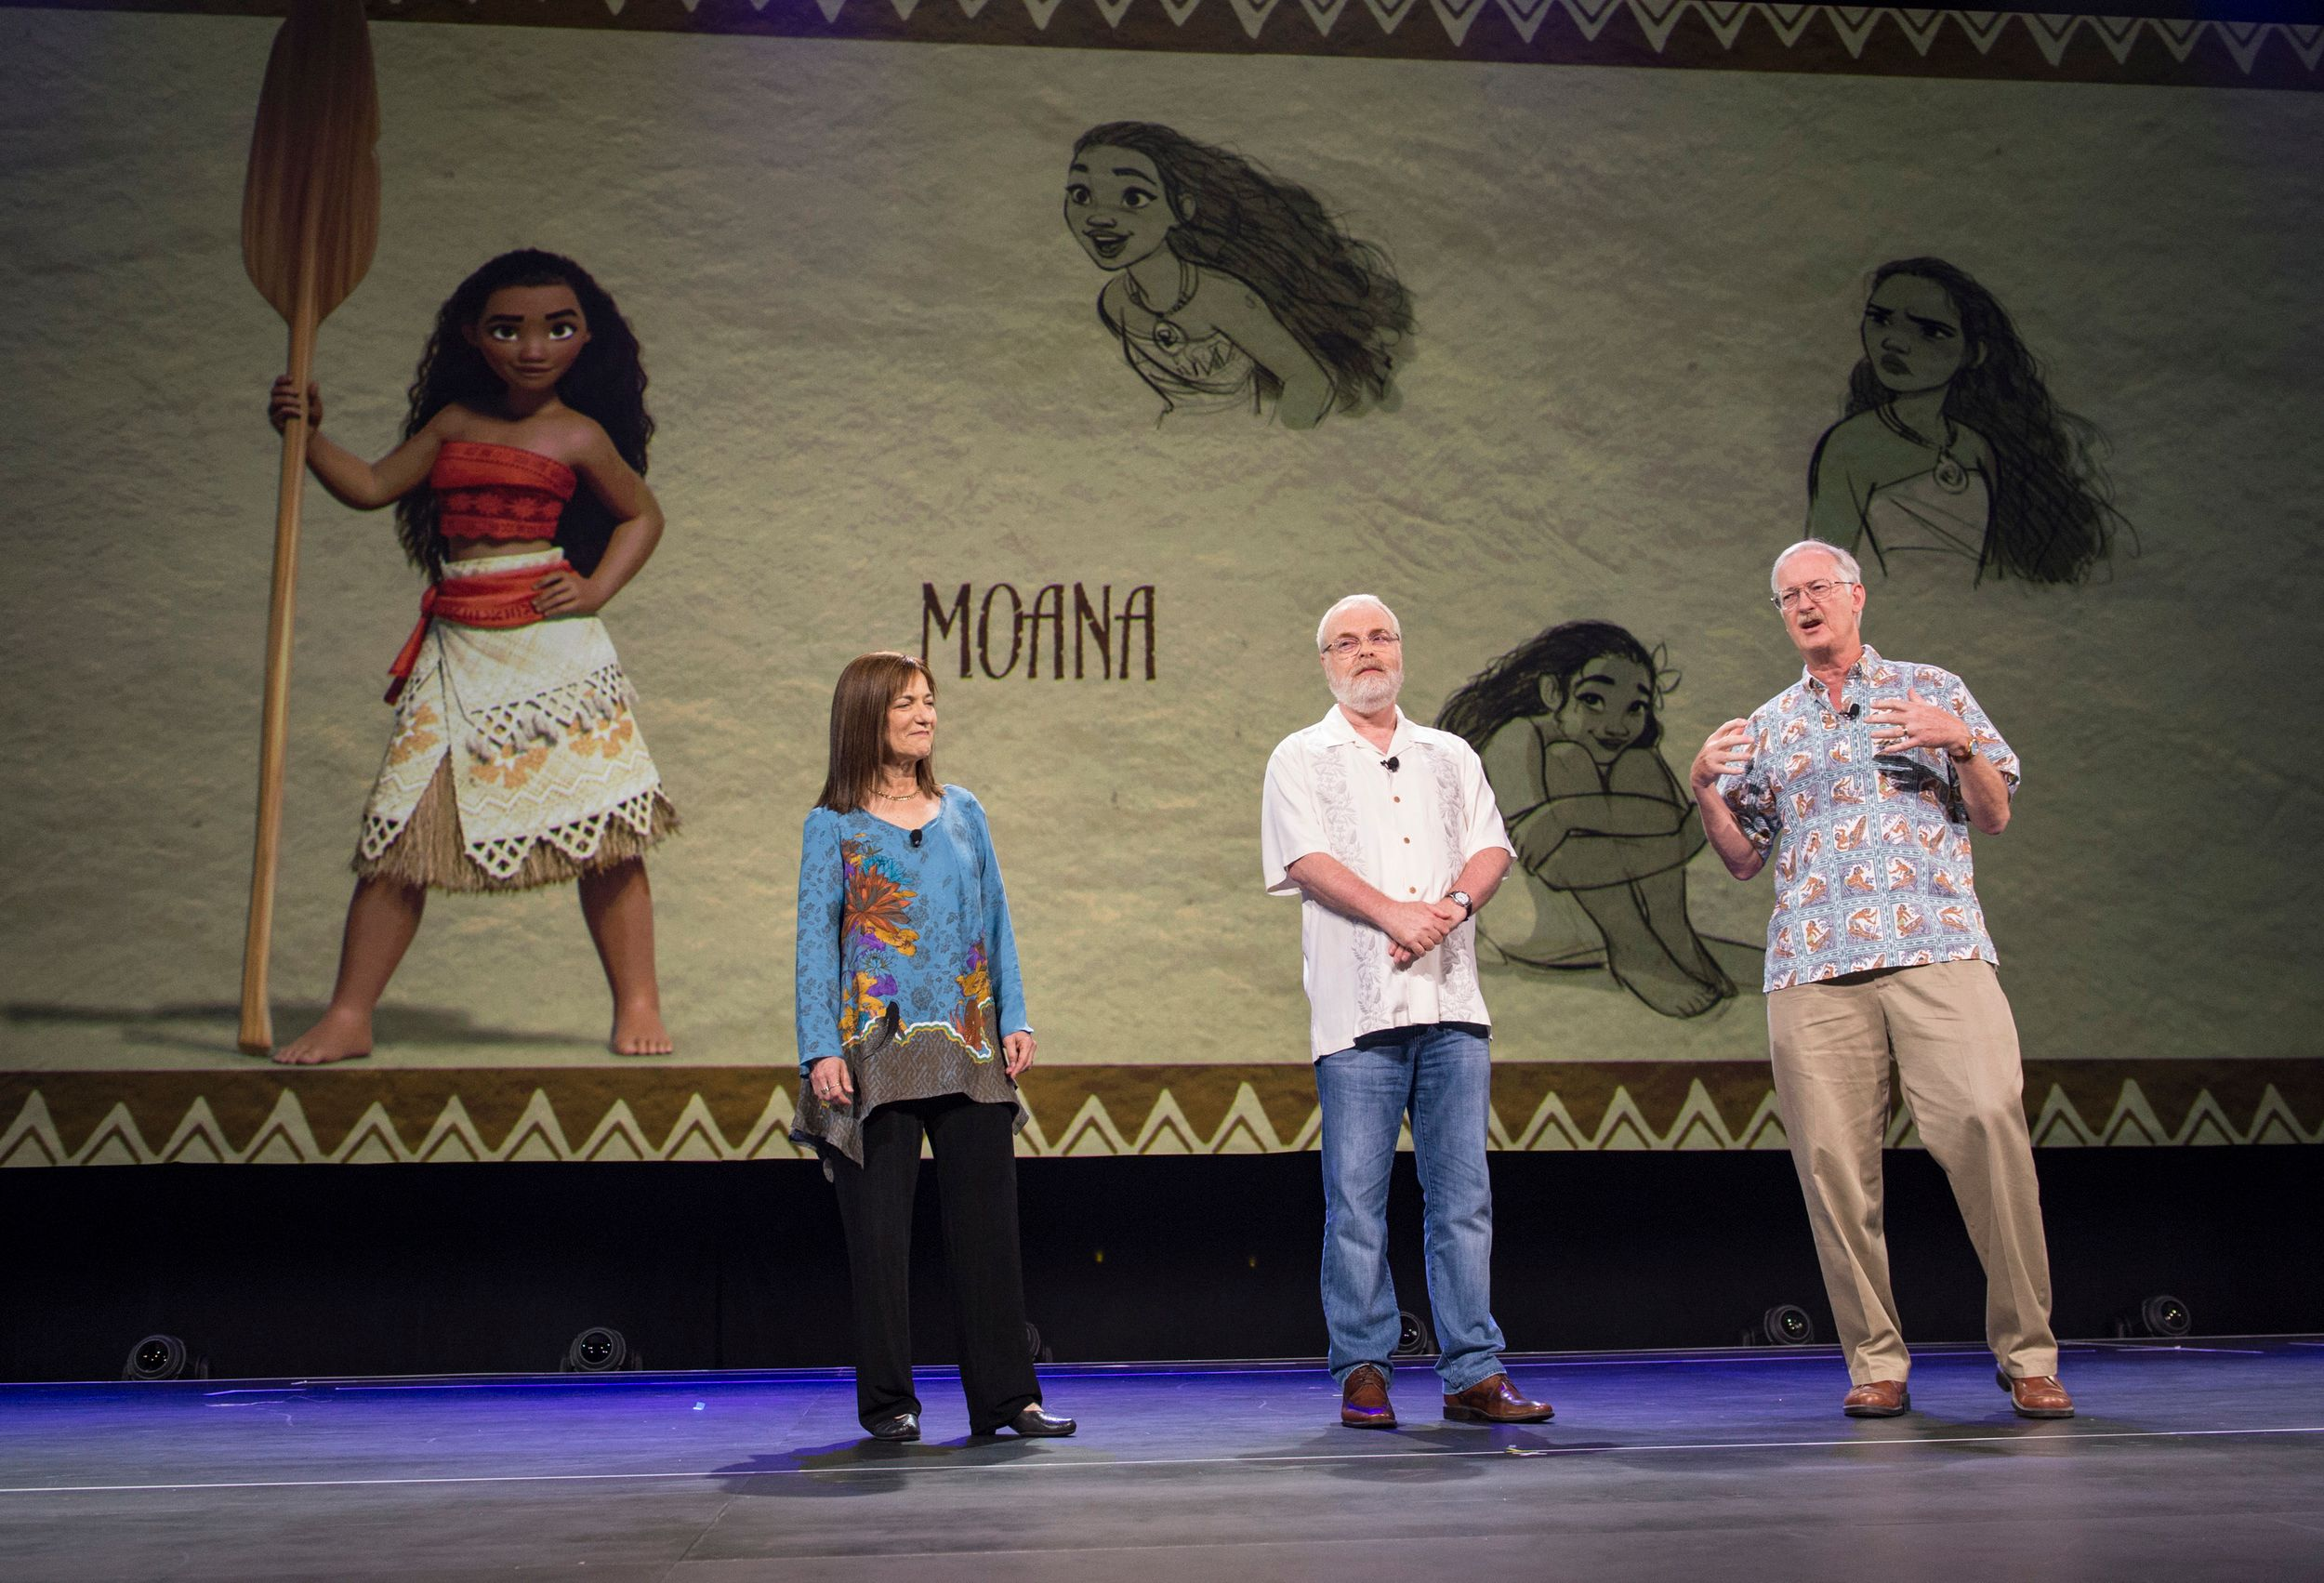 Moana images reveal dwayne johnson 39 s character collider for Concept expo